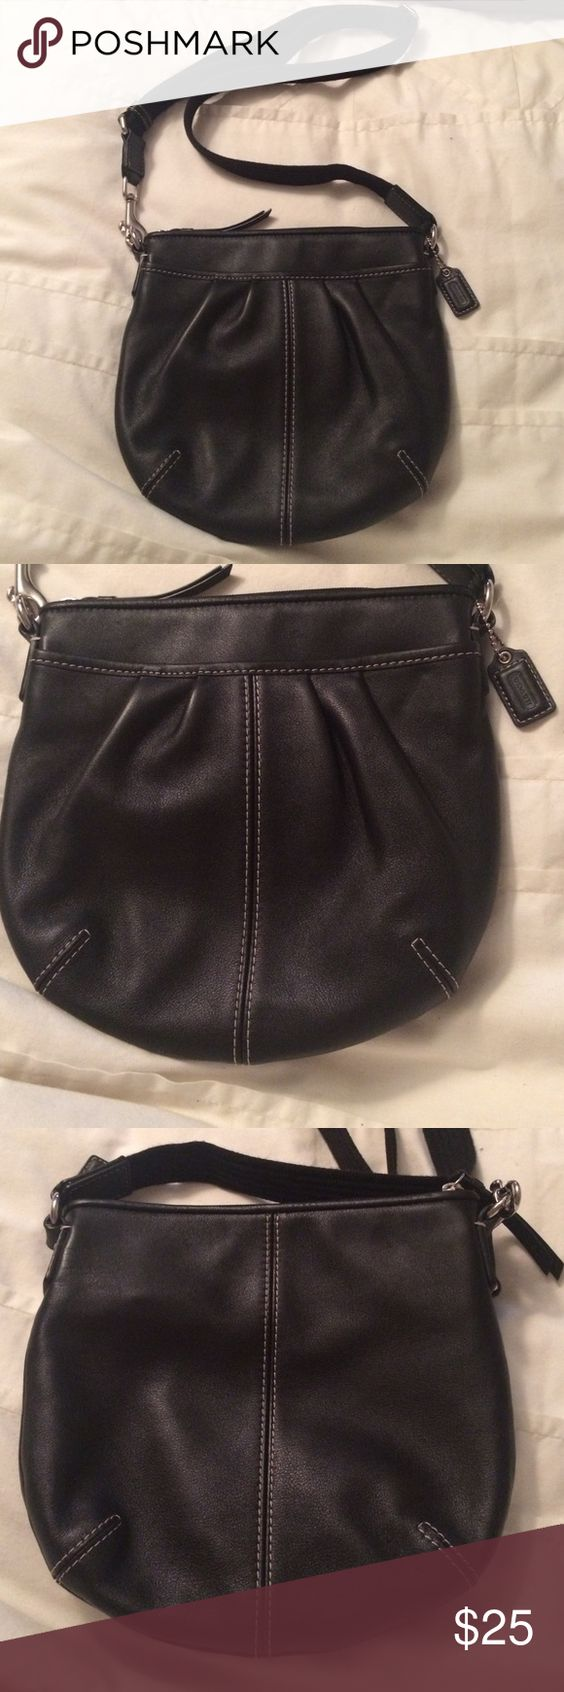 Authentic coach black pleated leather crossbody Being offered is a new no tags authentic coach black pleated leather crossbody handbag that measures 9x8.5 and has an adjustable crossbody strap. Smoke free home I do bundle and take reasonable offers. Coach Bags Crossbody Bags